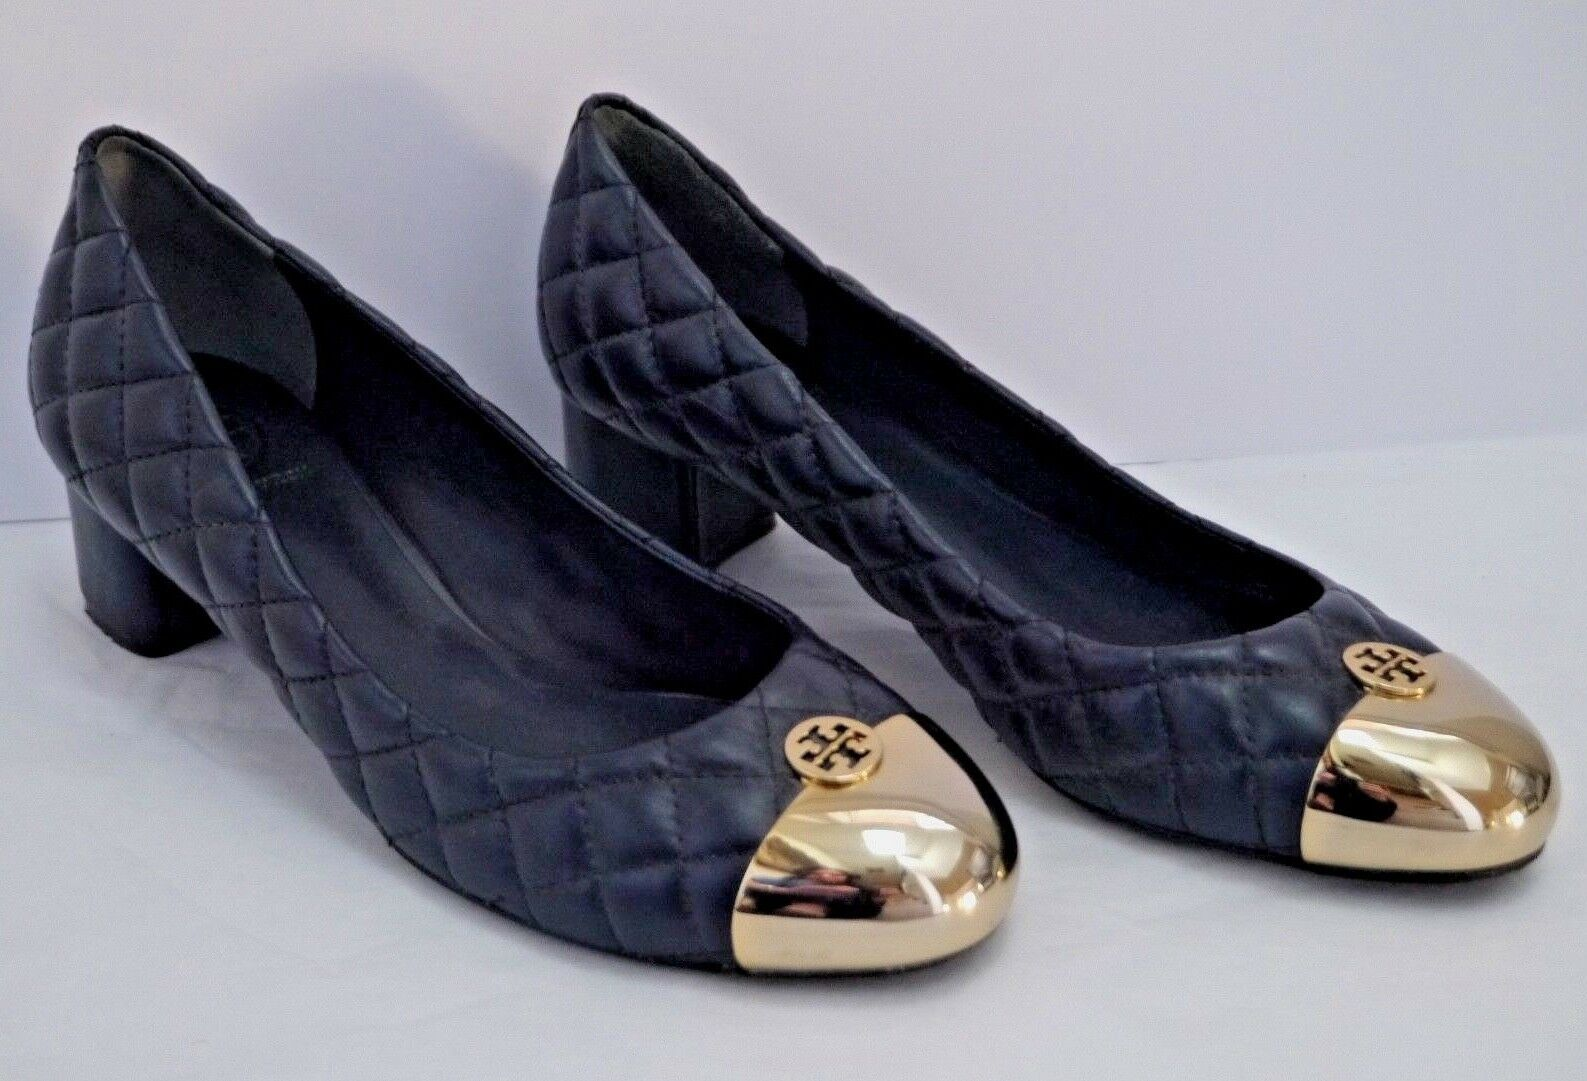 TORY BURCH Kaitlin navy quilted leather gold metal logo toe pumps low heels 9